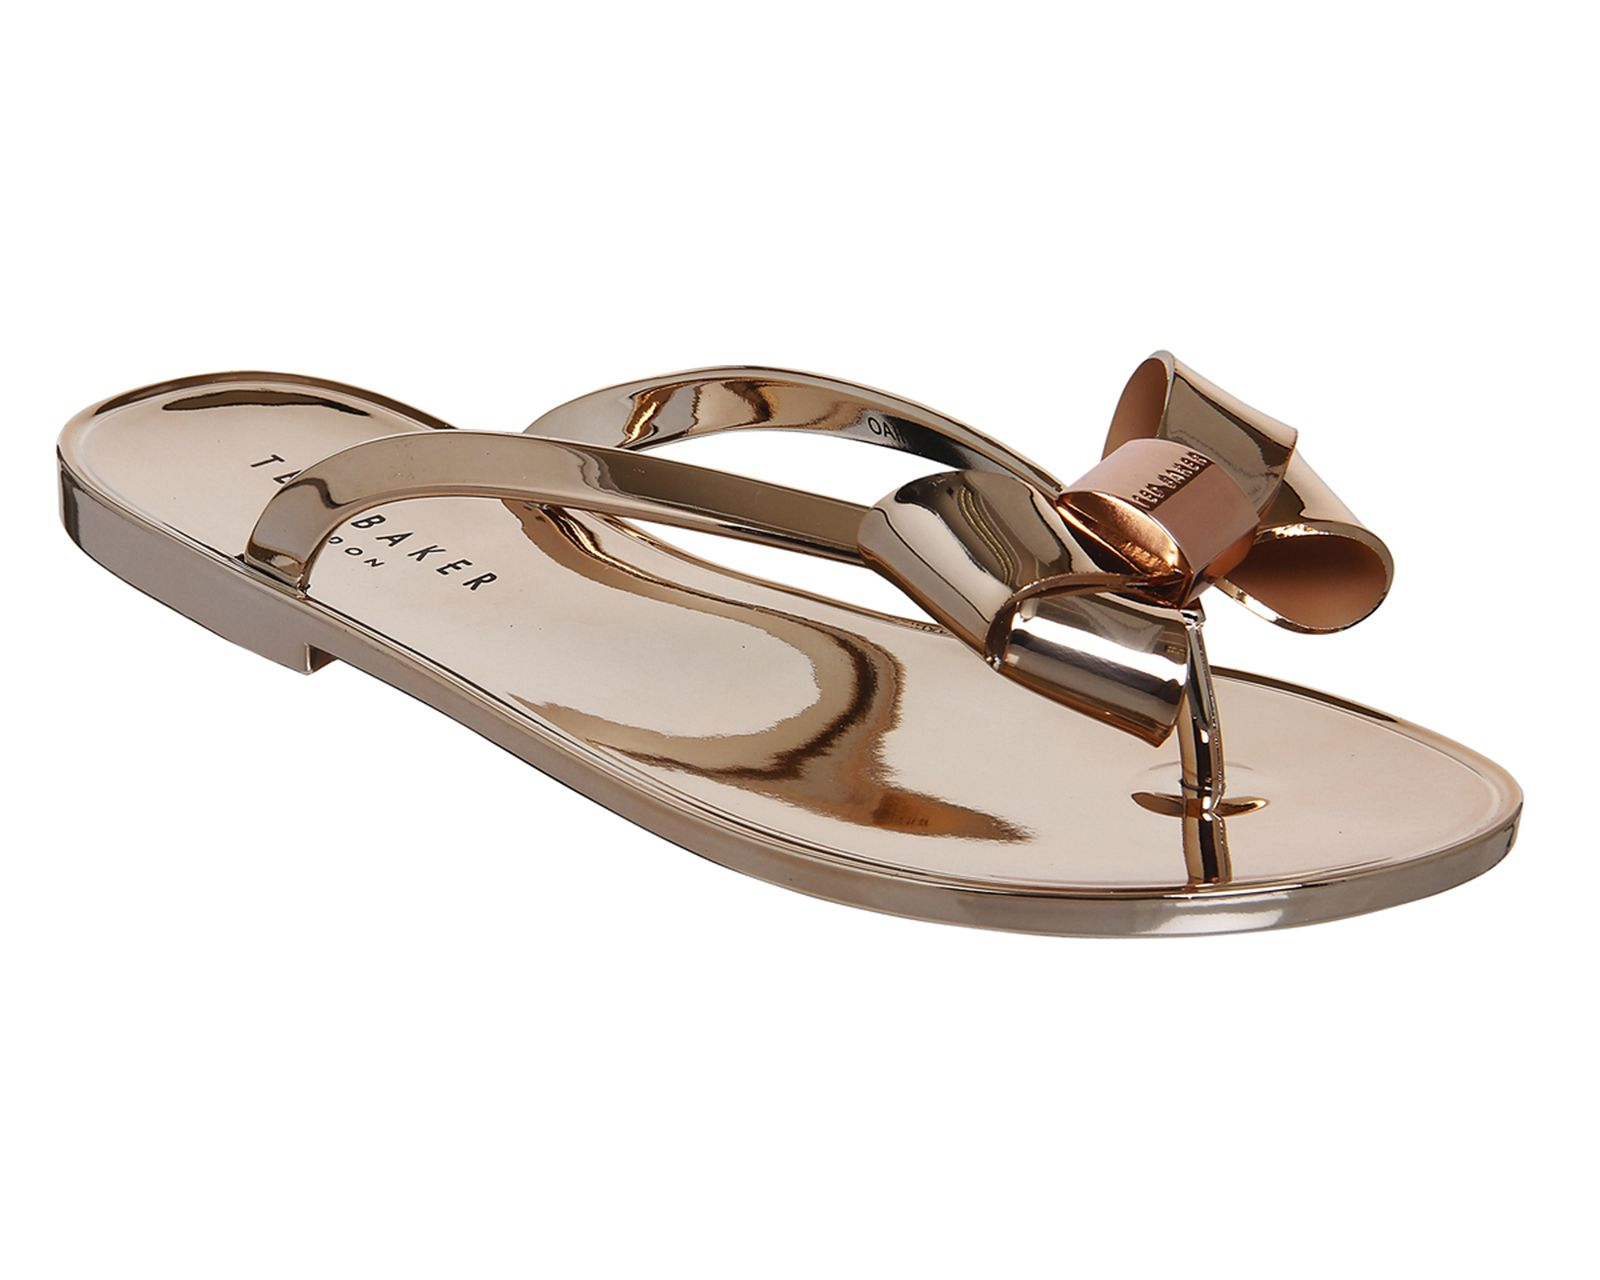 e93462b9722f Buy Rose Gold Exclusive Ted Baker Ettiea Flip Flops from OFFICE.co ...